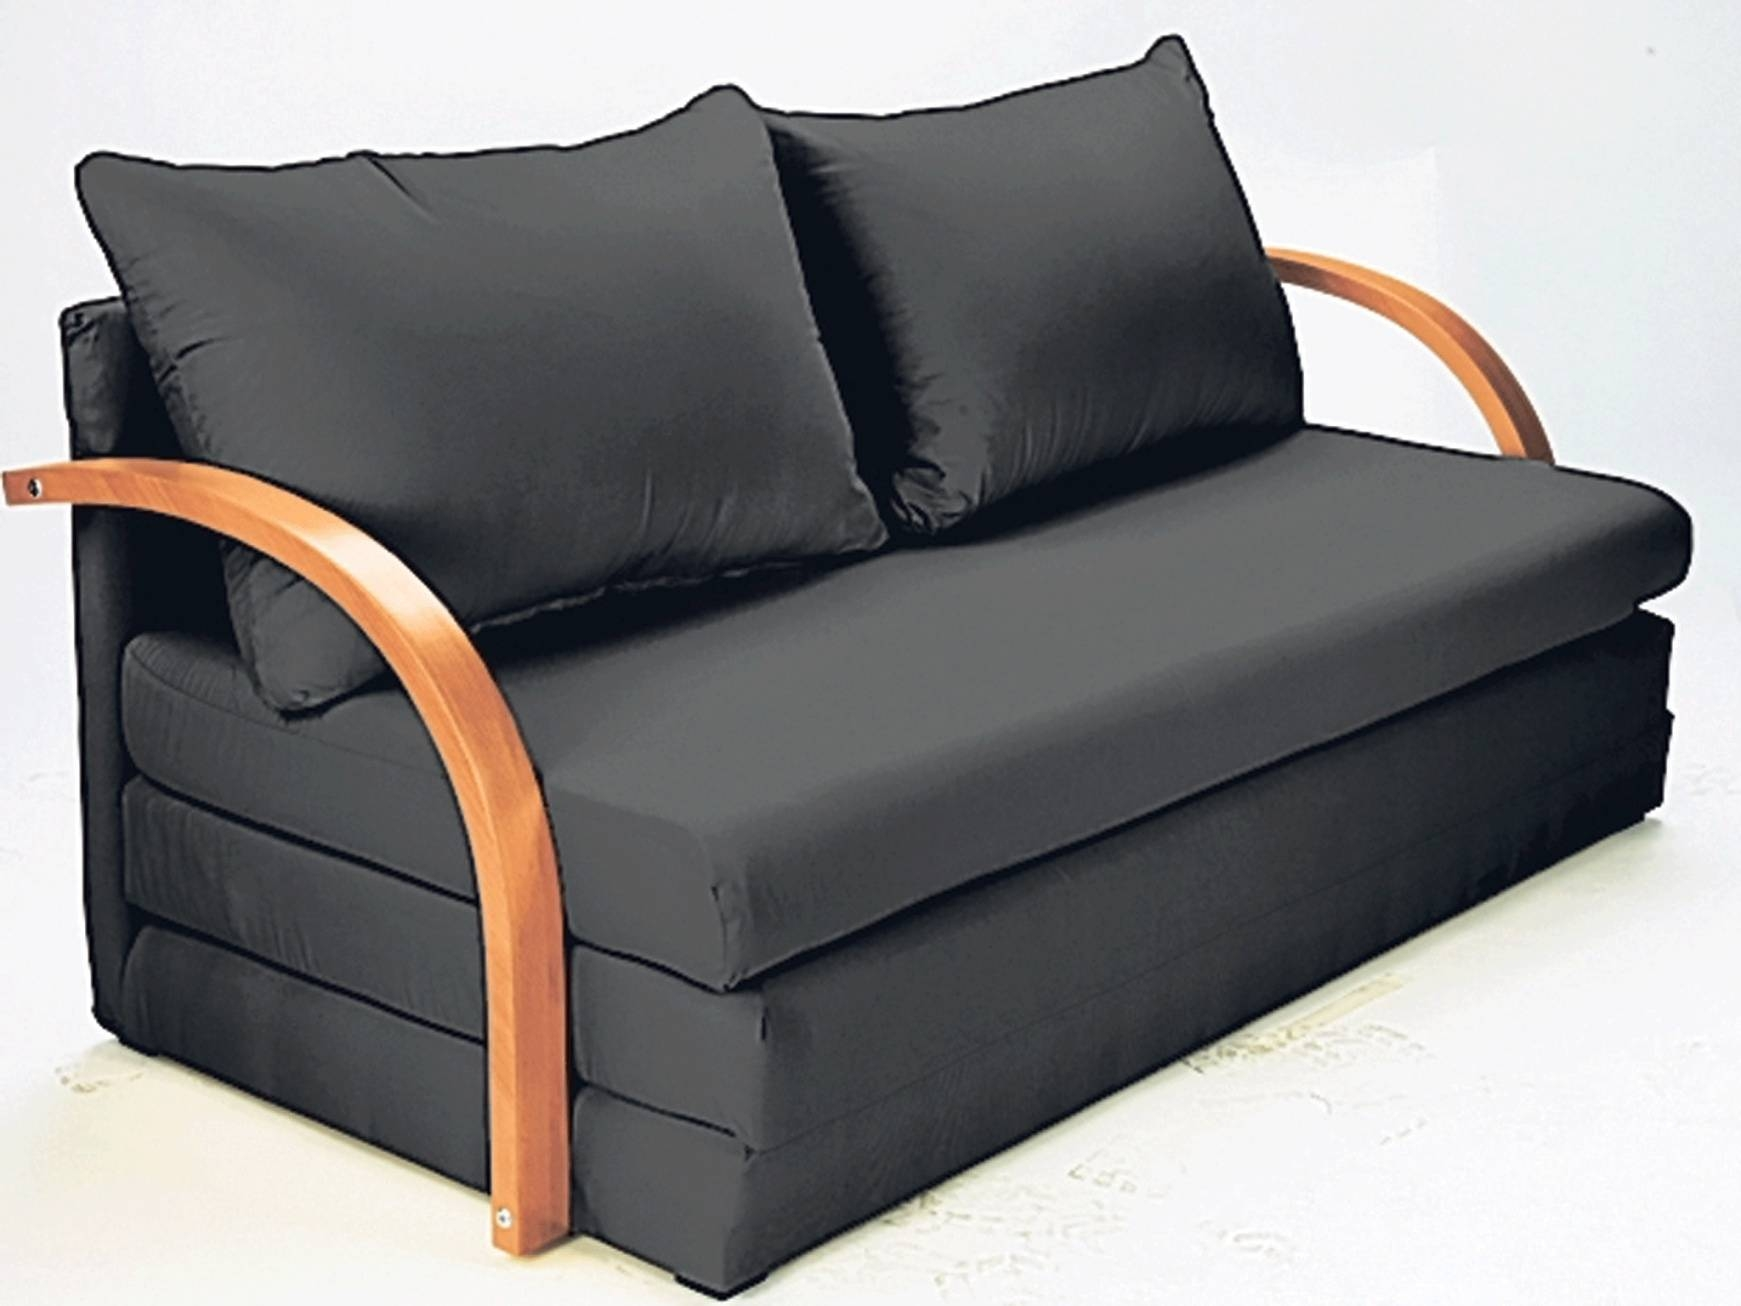 Single Chair Sofa Bed For Sale – Elite Home Throughout Cheap Single Sofa Bed Chairs (View 17 of 30)